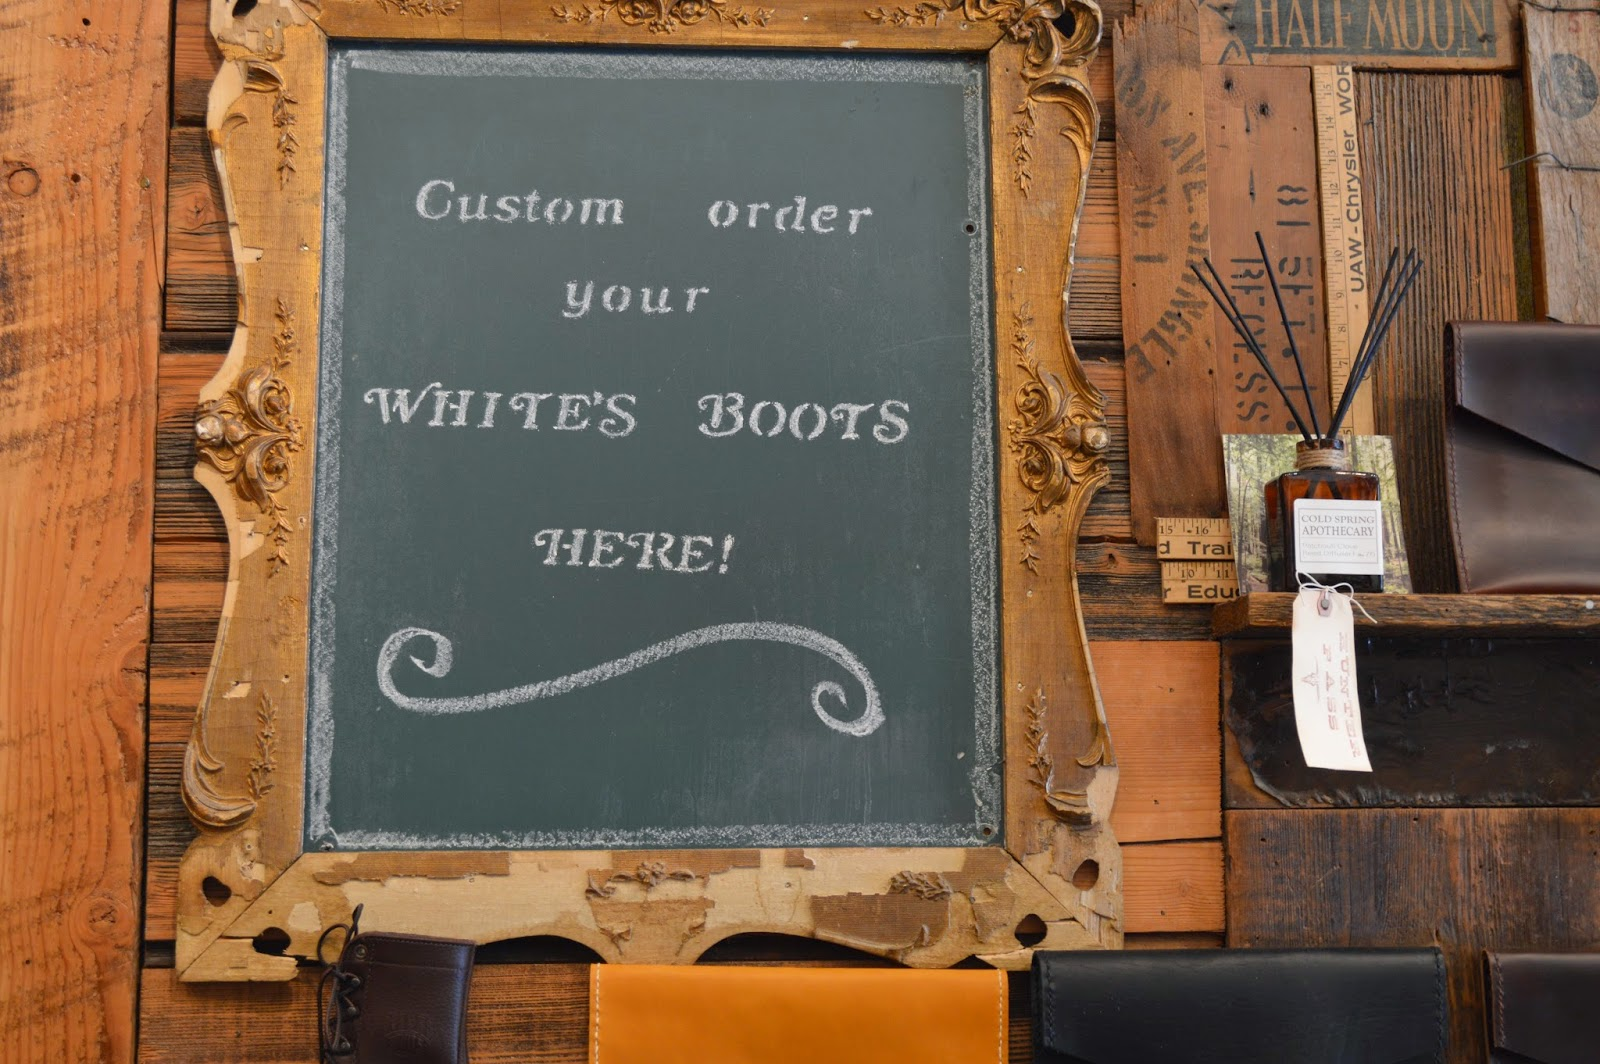 Animal Traffic's hand written sign for ordering White's Boots